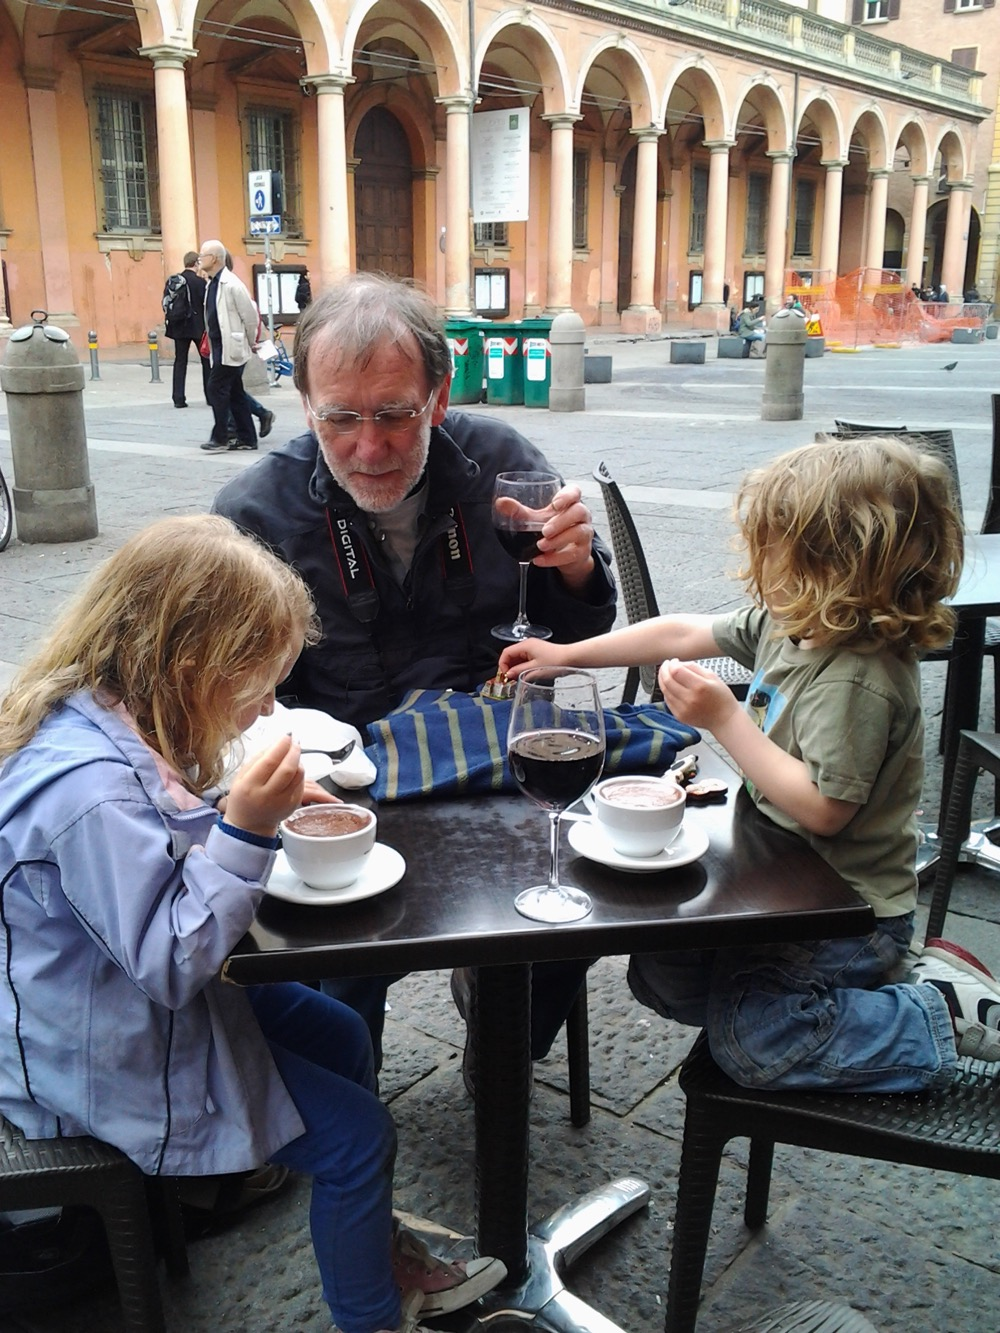 Family City Break Inspiration: Bologna and lots more!